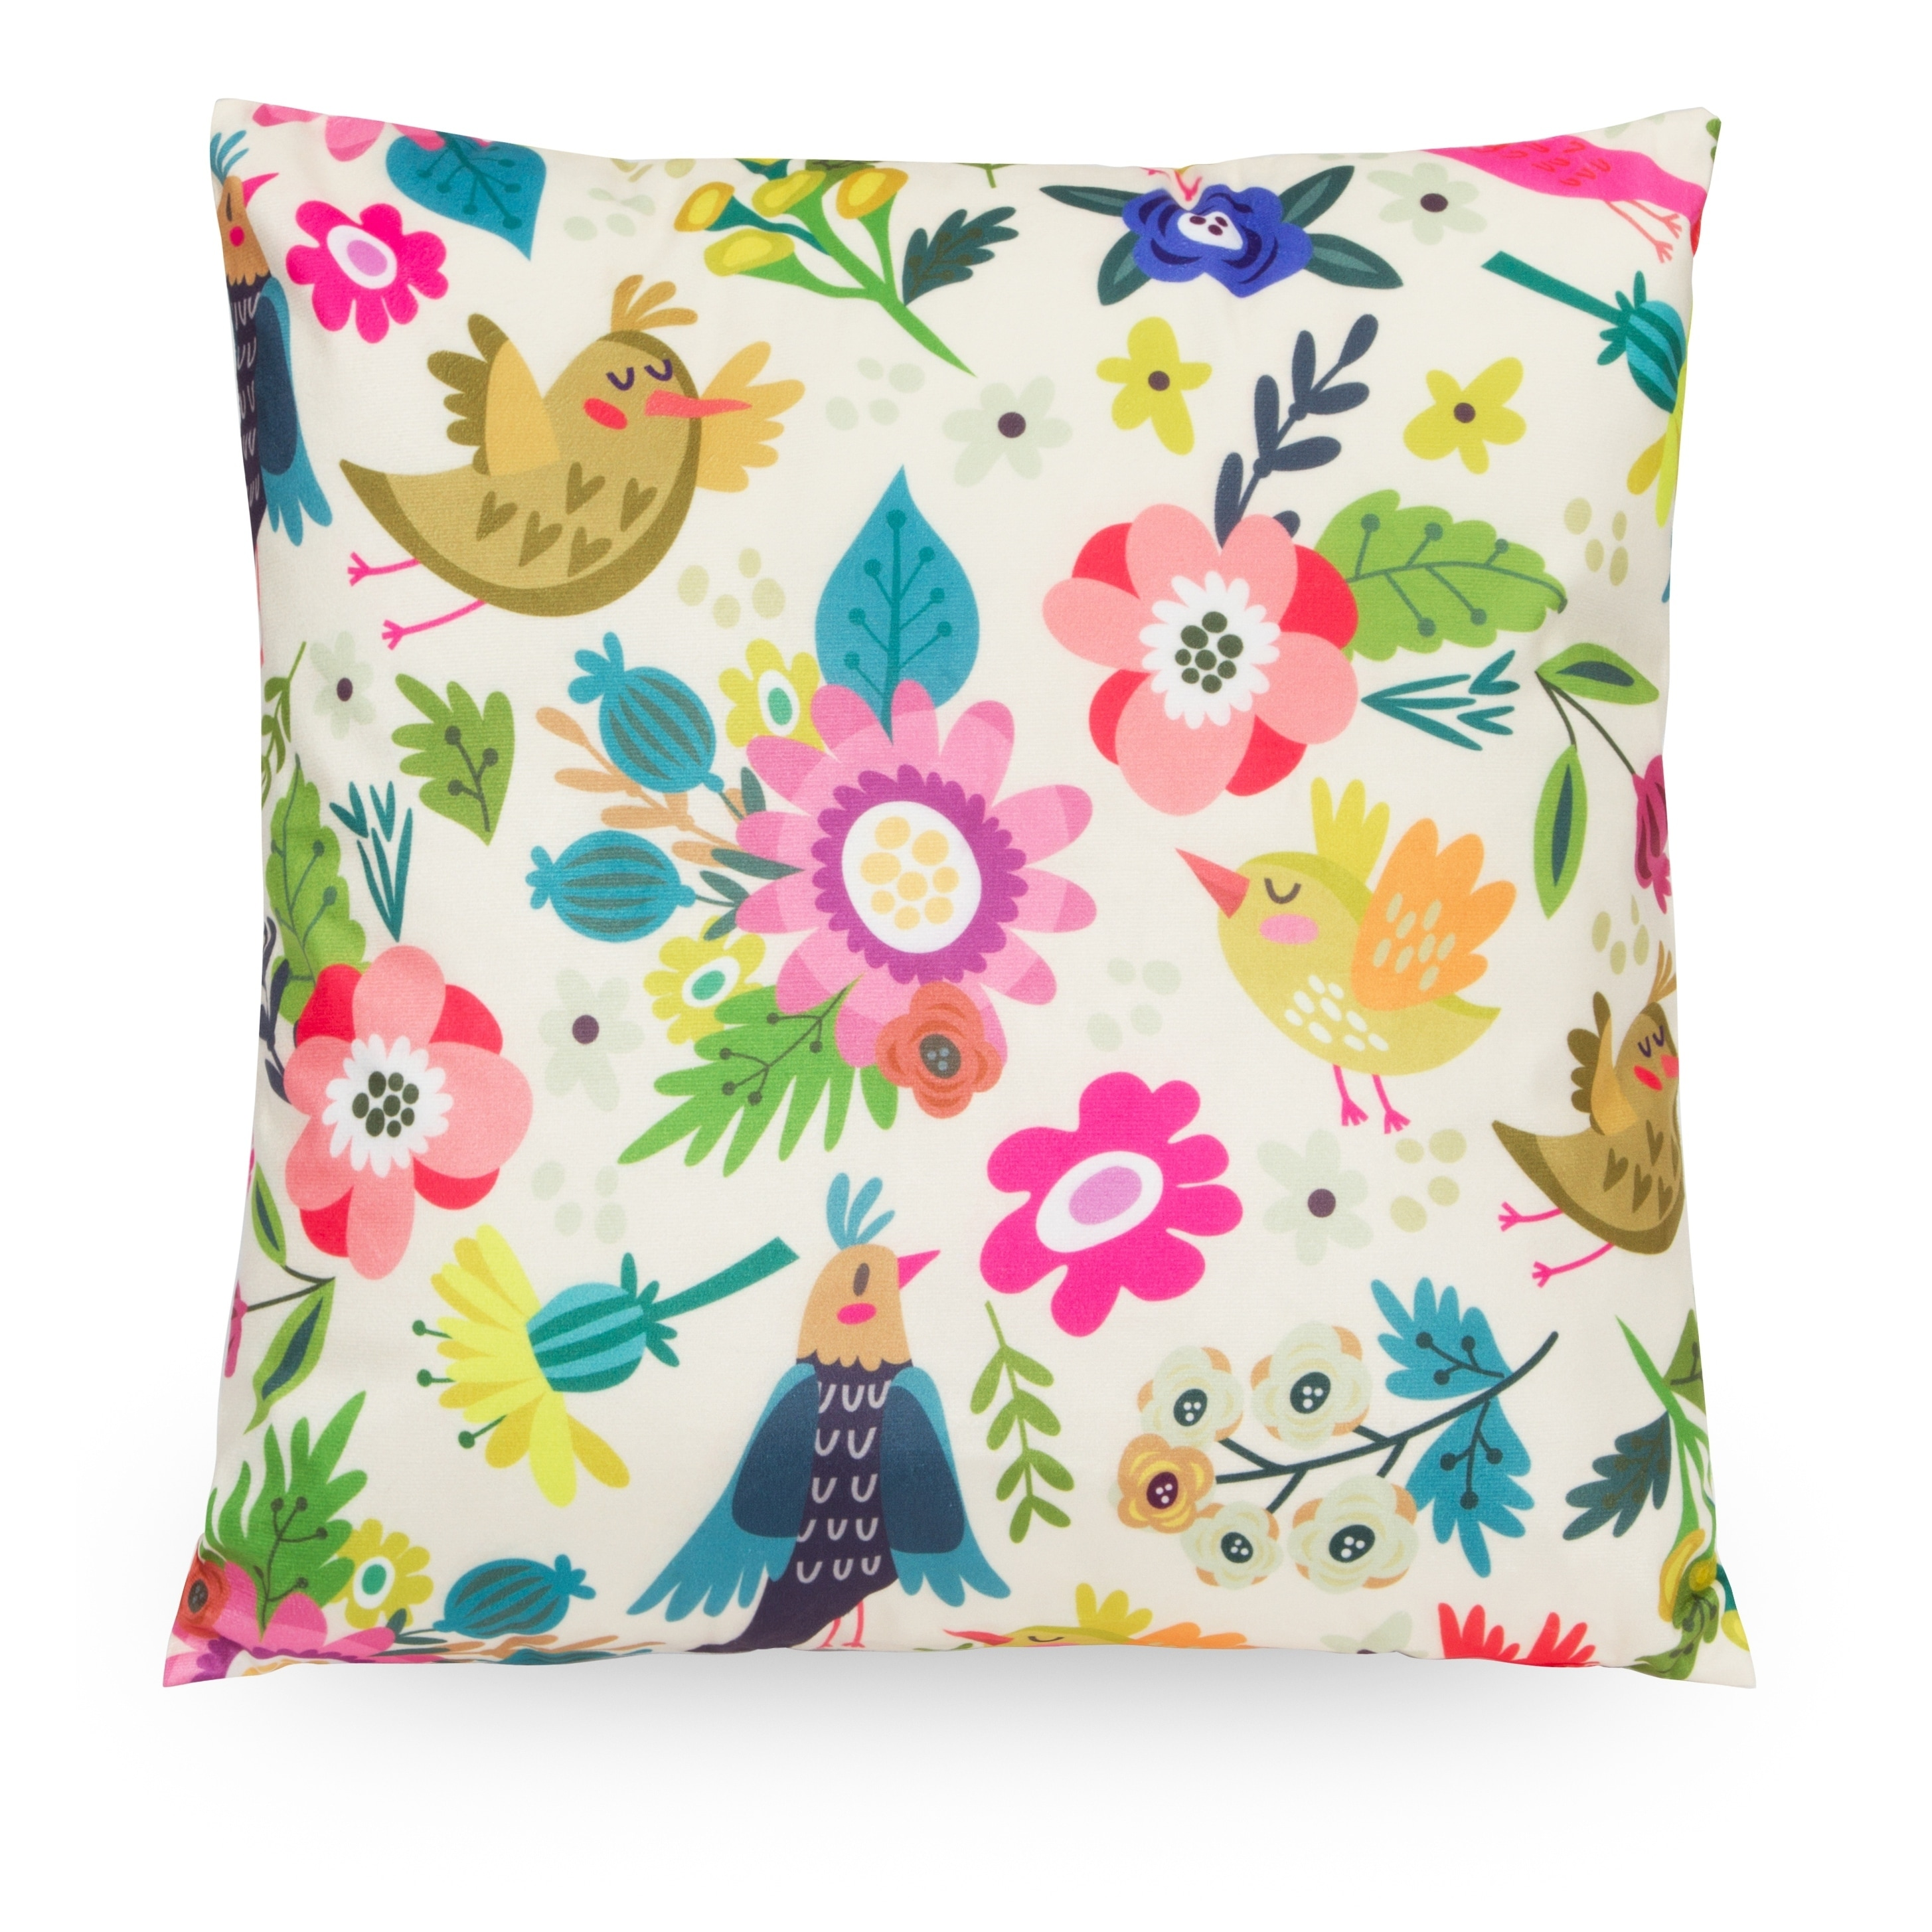 Fl Bird 18 Microfiber Throw Pillow Cover Decorative Pillowcase Free Shipping On Orders Over 45 18658624